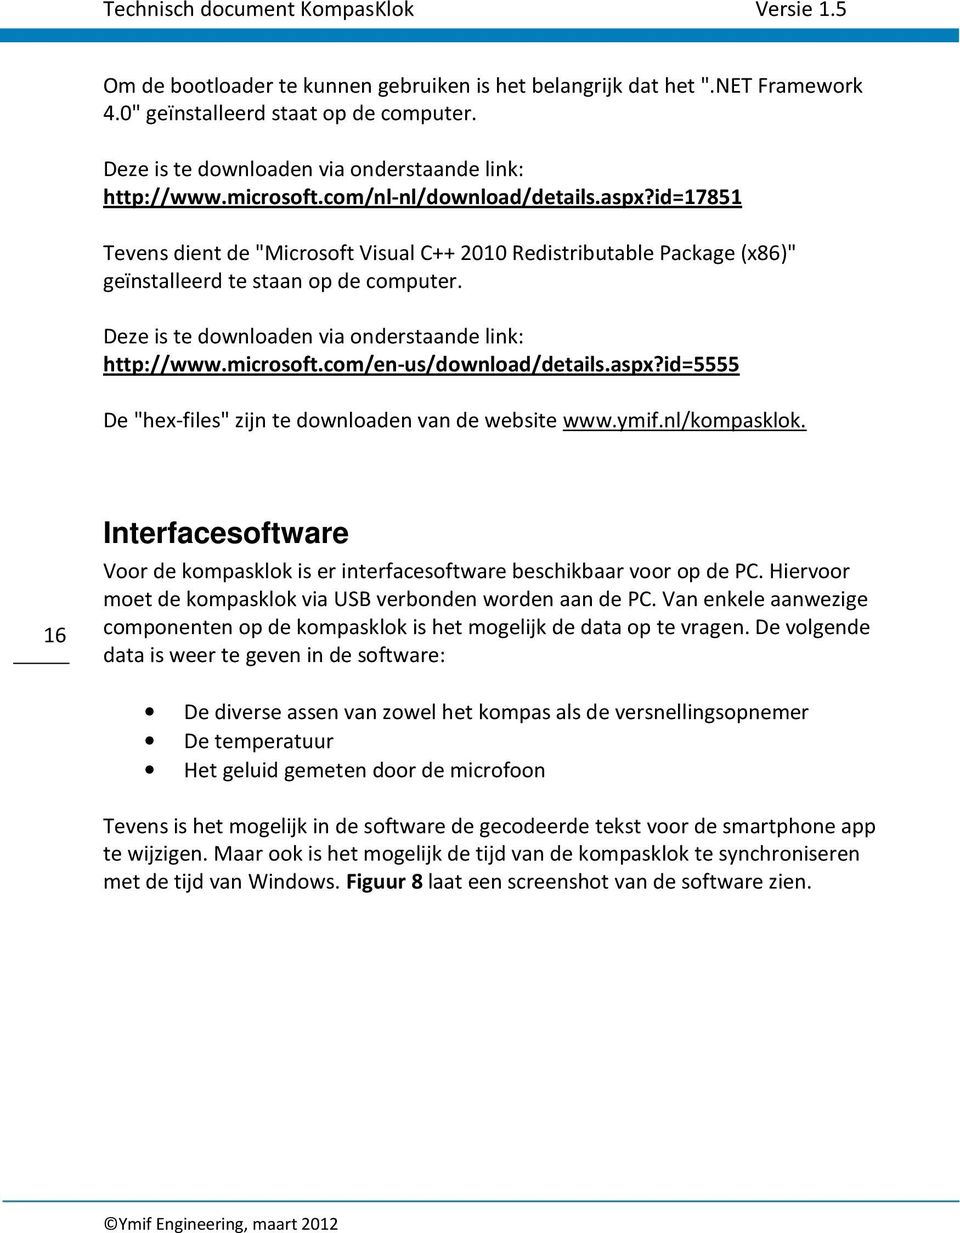 "Deze is te downloaden via onderstaande link: http://www.microsoft.com/en-us/download/details.aspx?id=5555 De ""hex-files"" zijn te downloaden van de website www.ymif.nl/kompasklok."